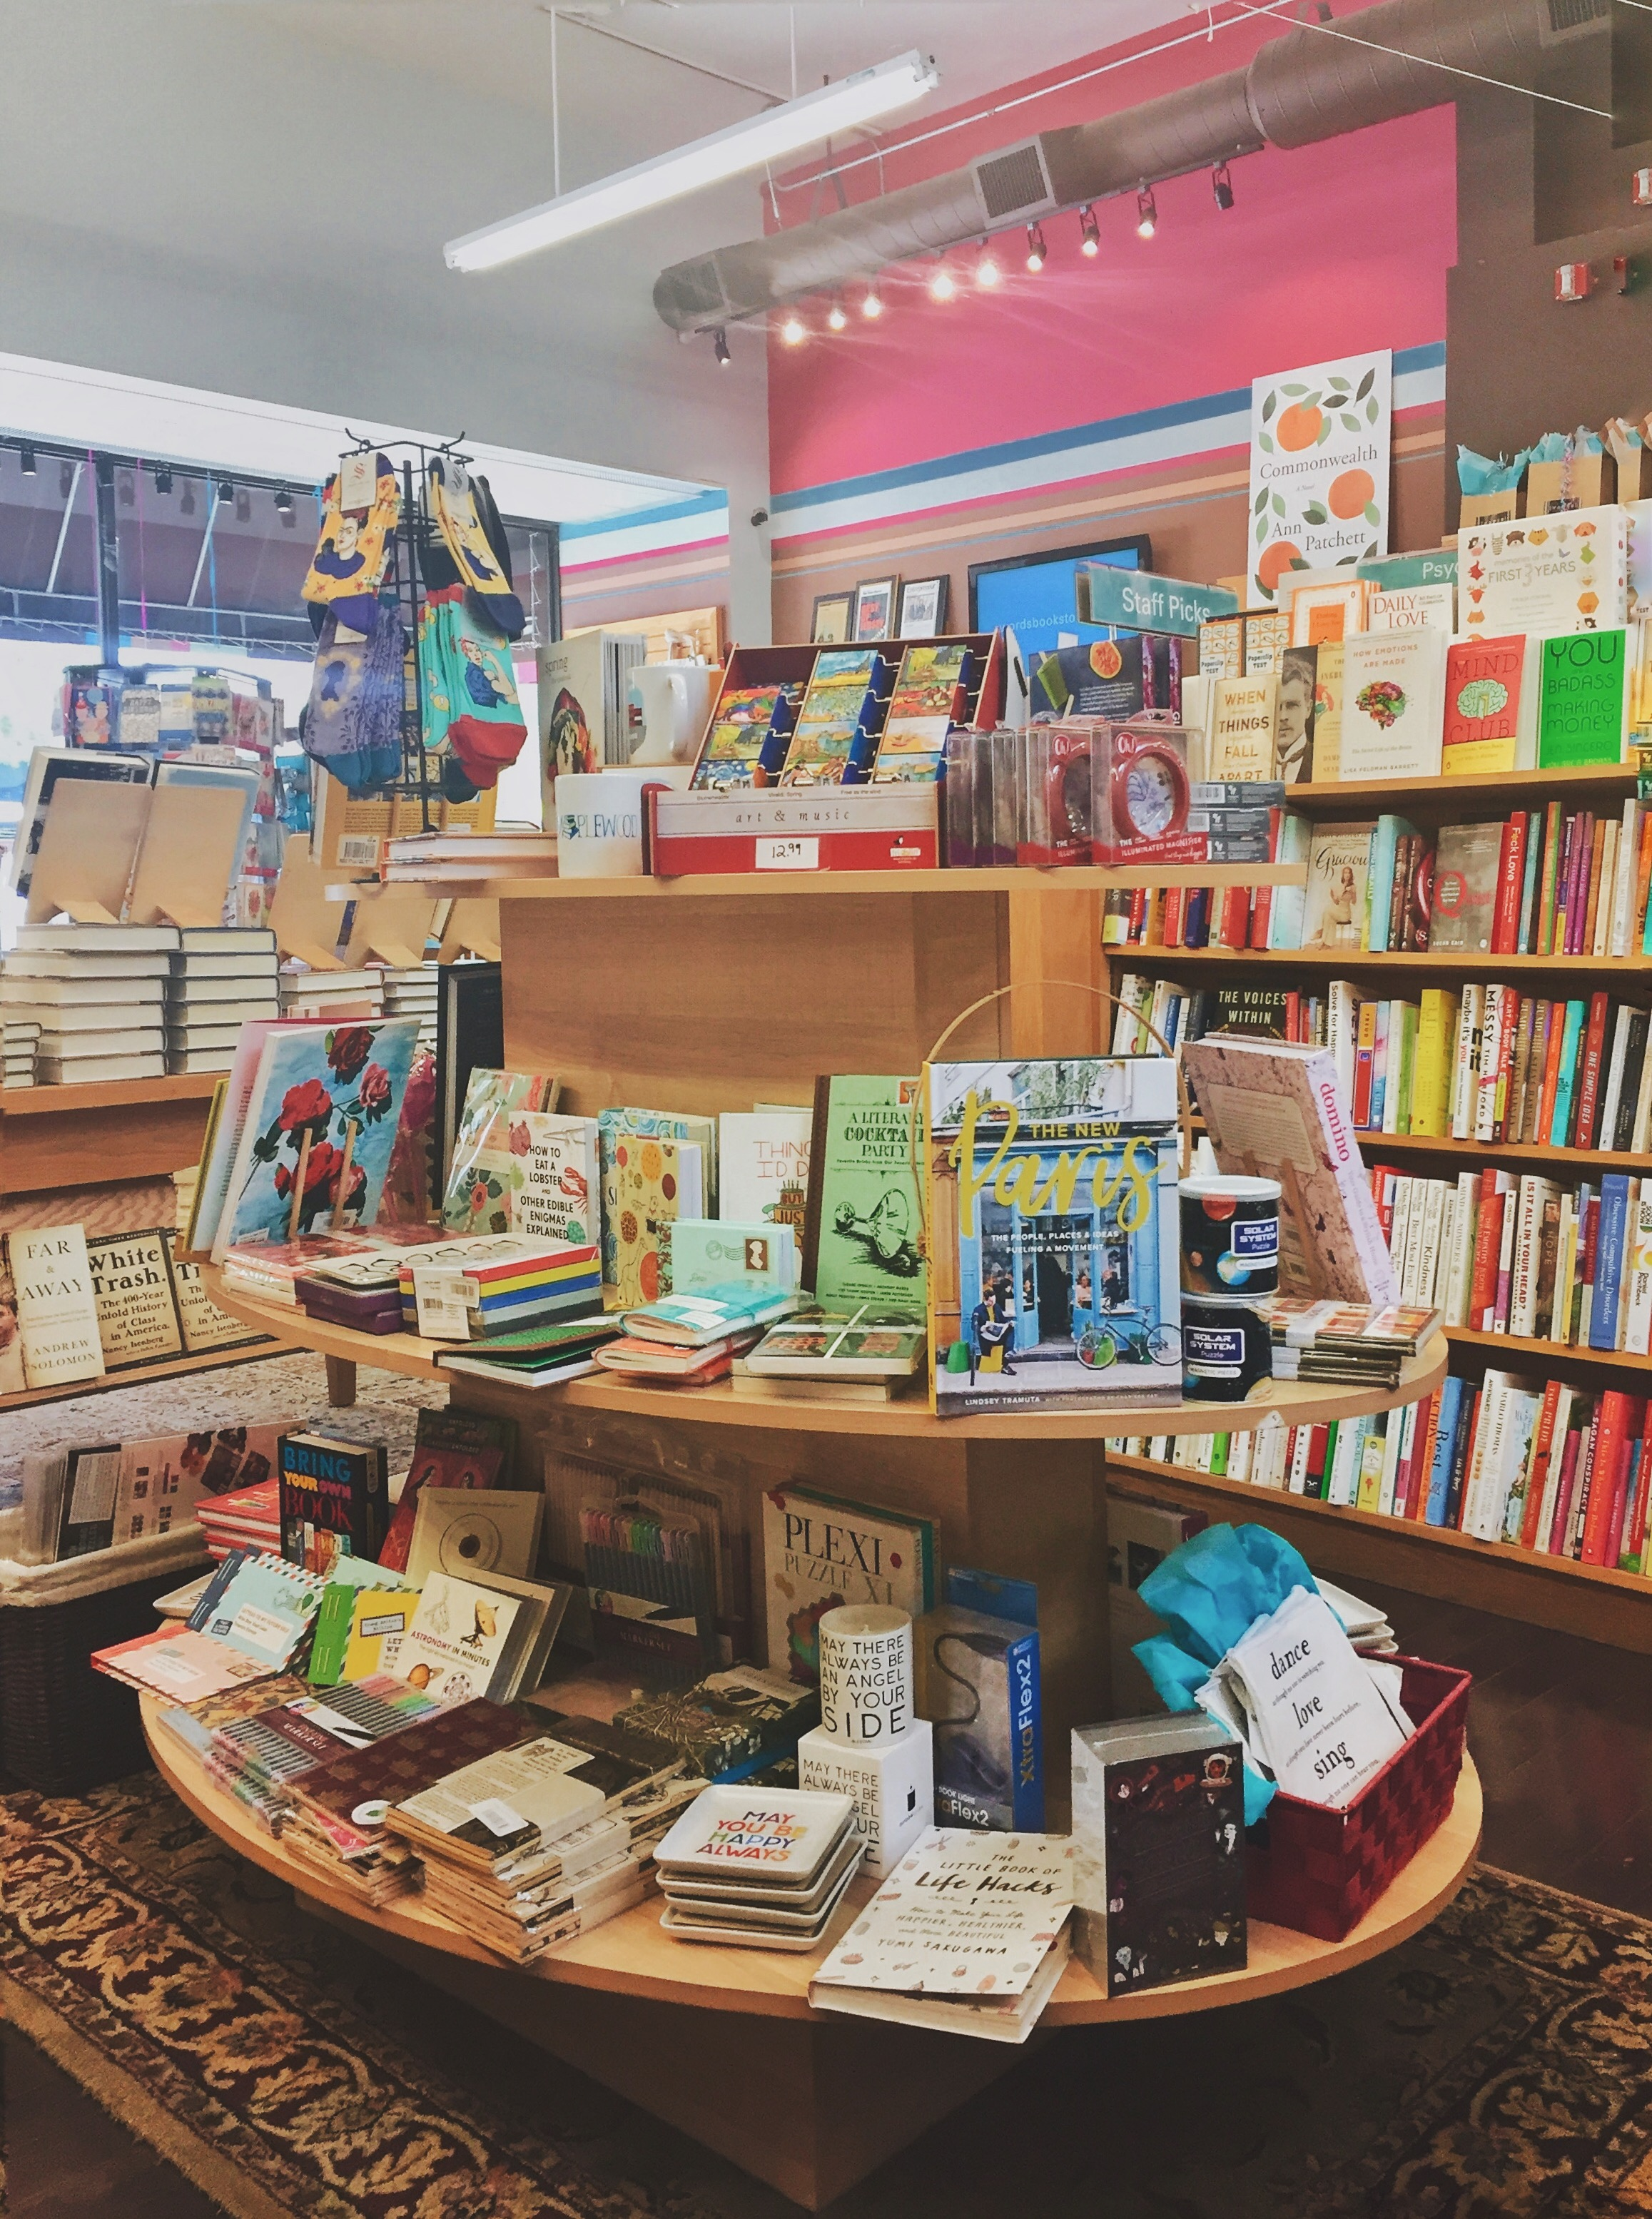 WORDS: Bookstore